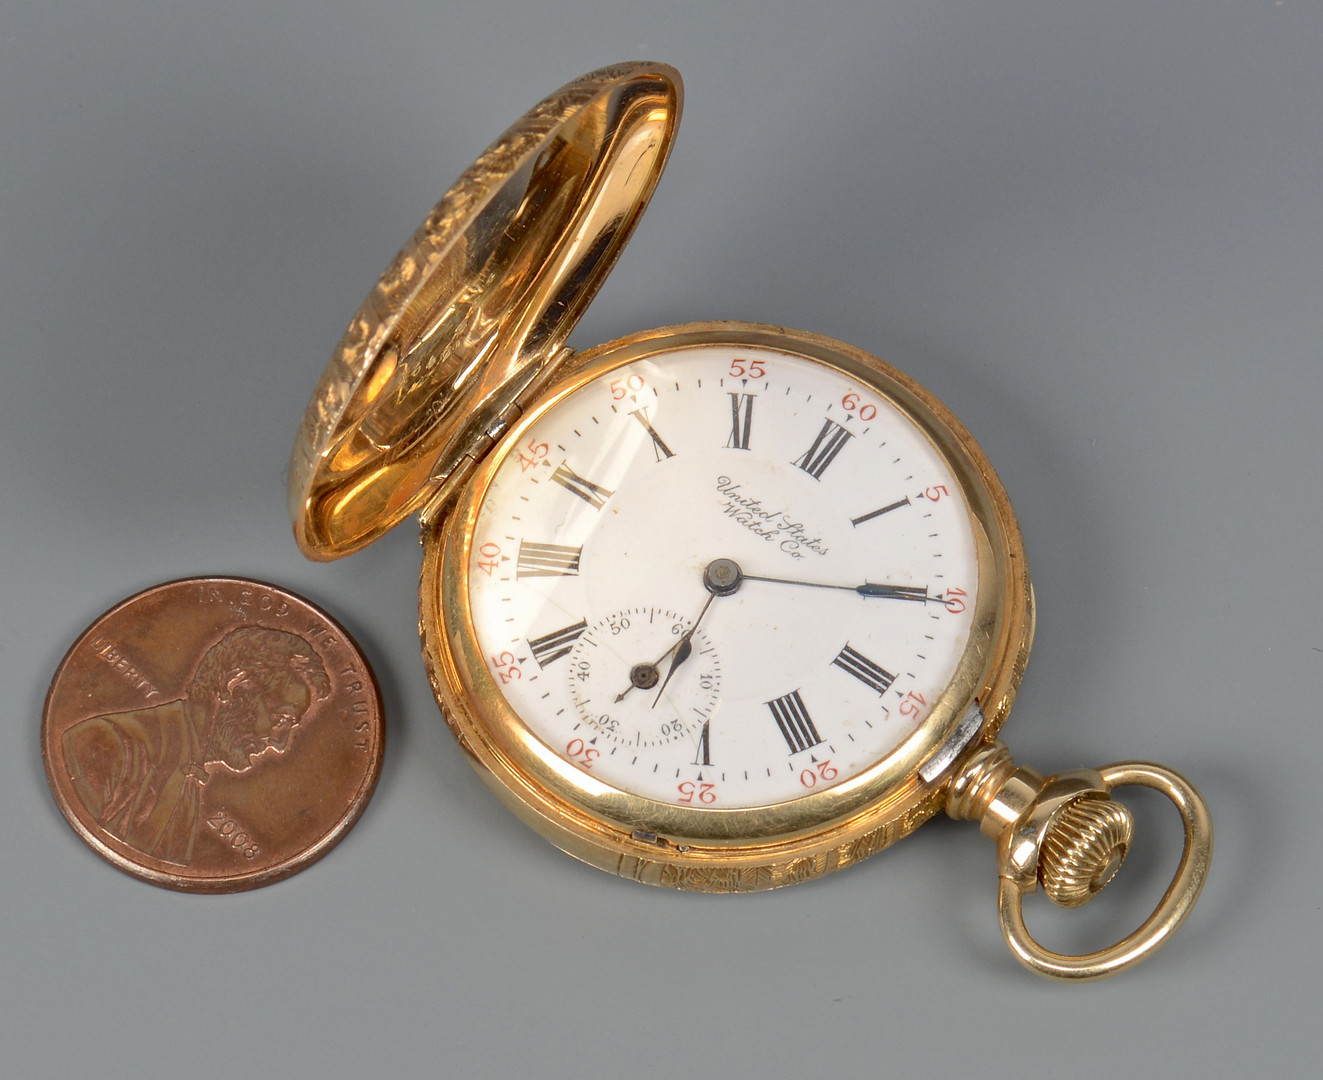 Lot 277: 14k United States Watch Co pocketwatch